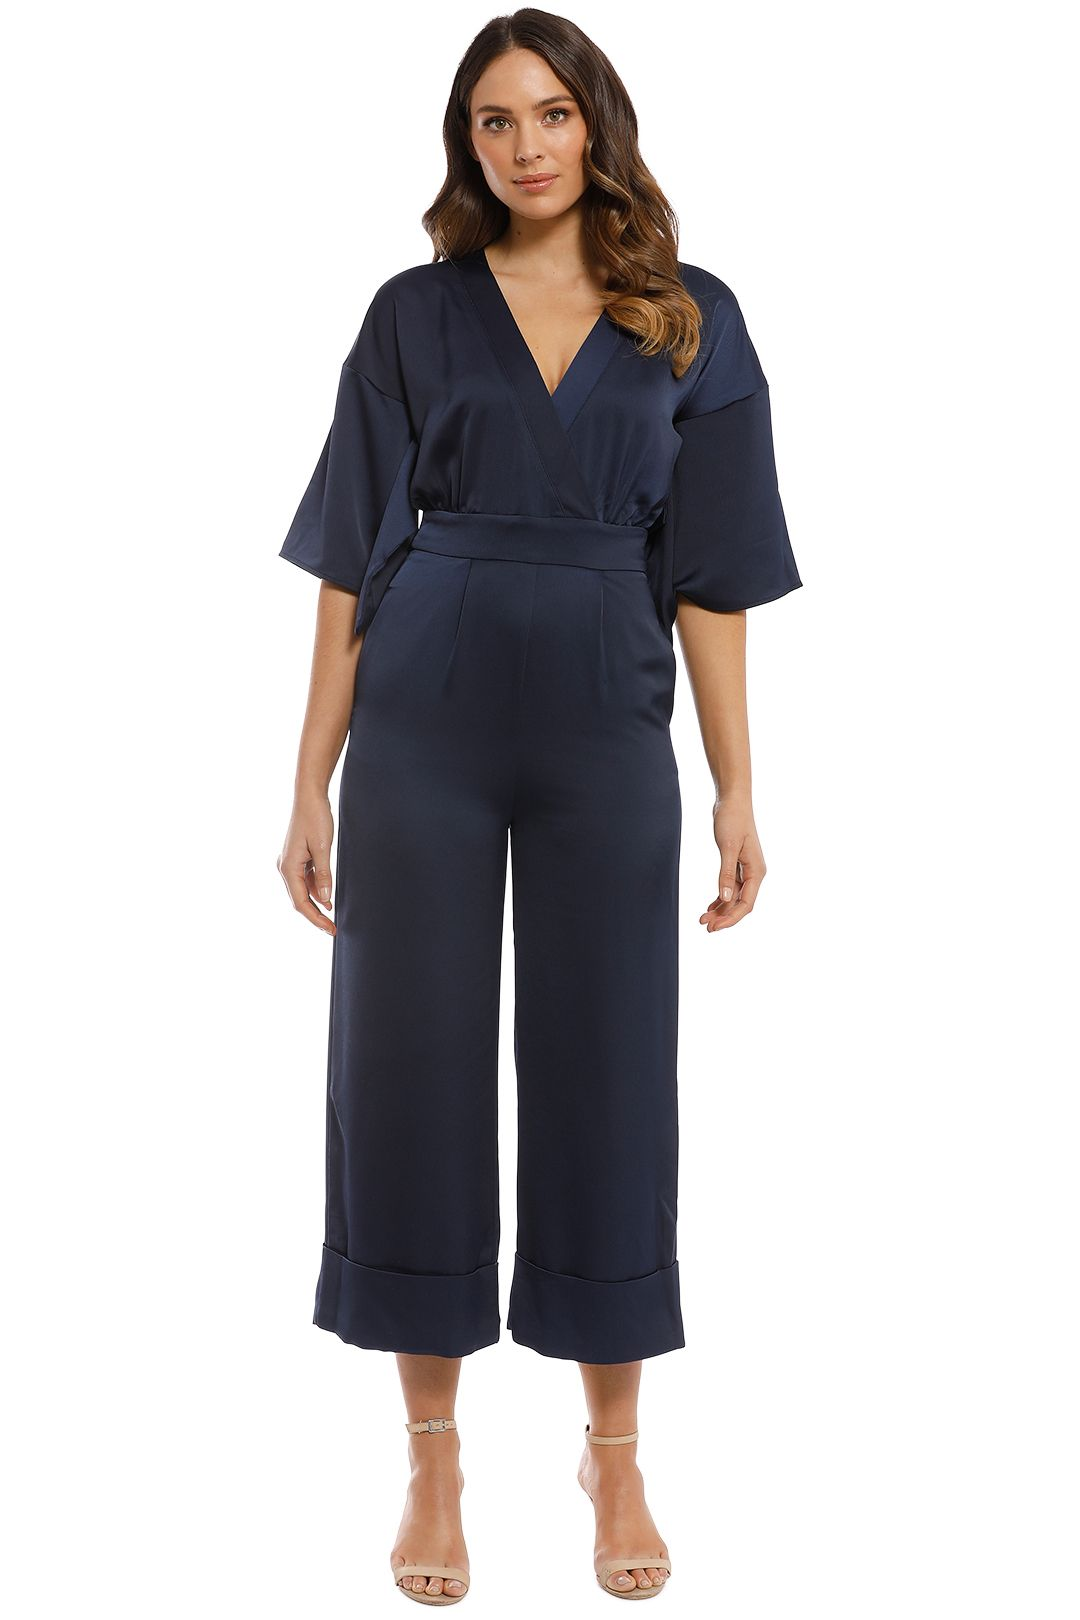 Iris and Ink - Sidney Satin Jumpsuit - Navy - Front